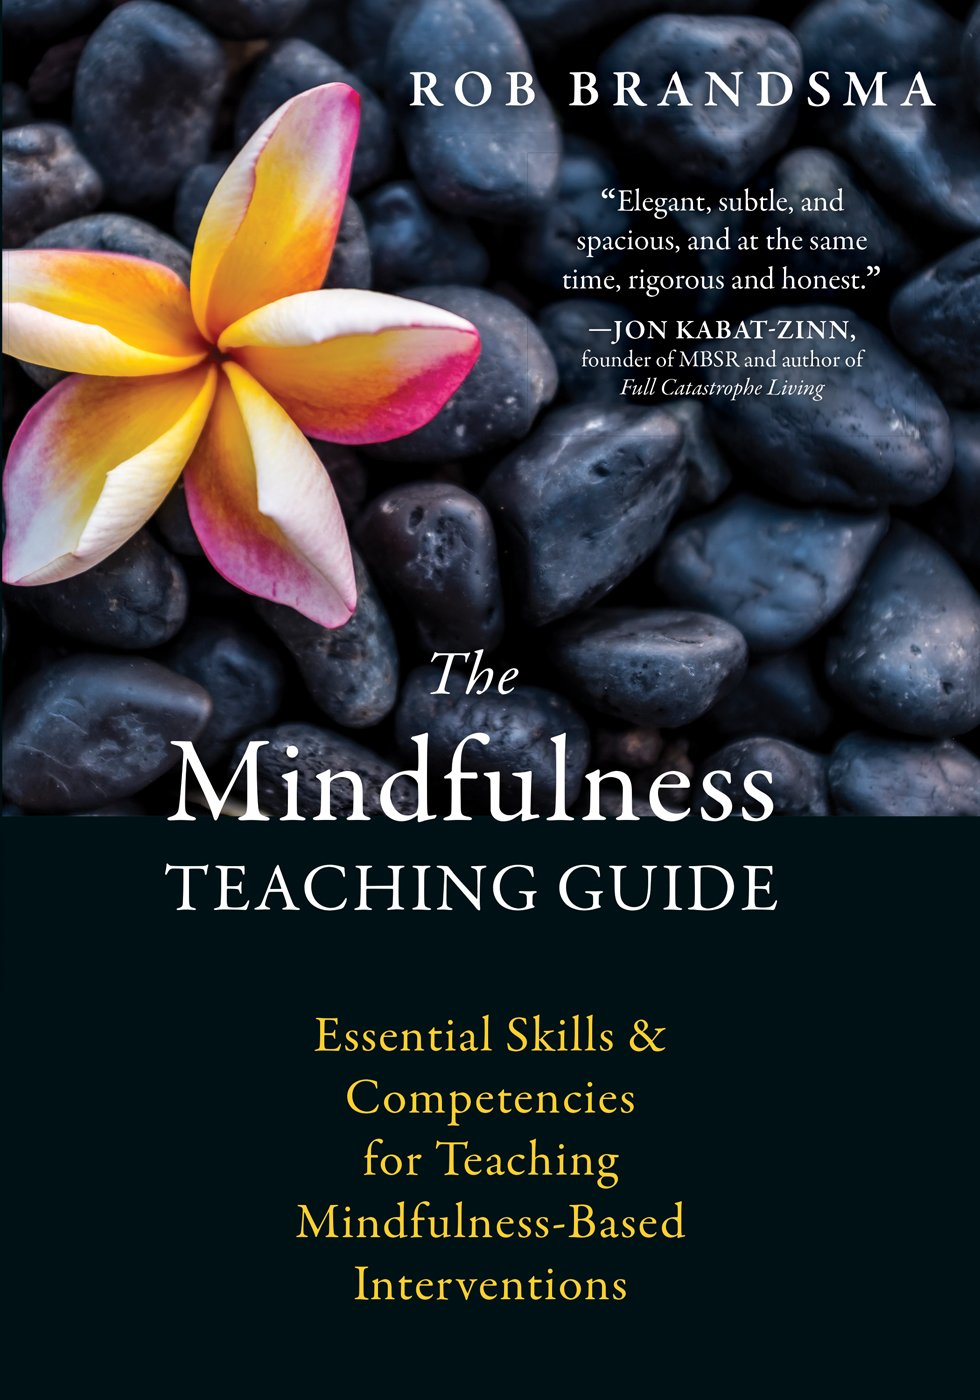 The Mindfulness Teaching Guide: Essential Skills and Competencies for  Teaching Mindfulness-Based Interventions: Rob Brandsma: 9781626256163:  Amazon.com: ...